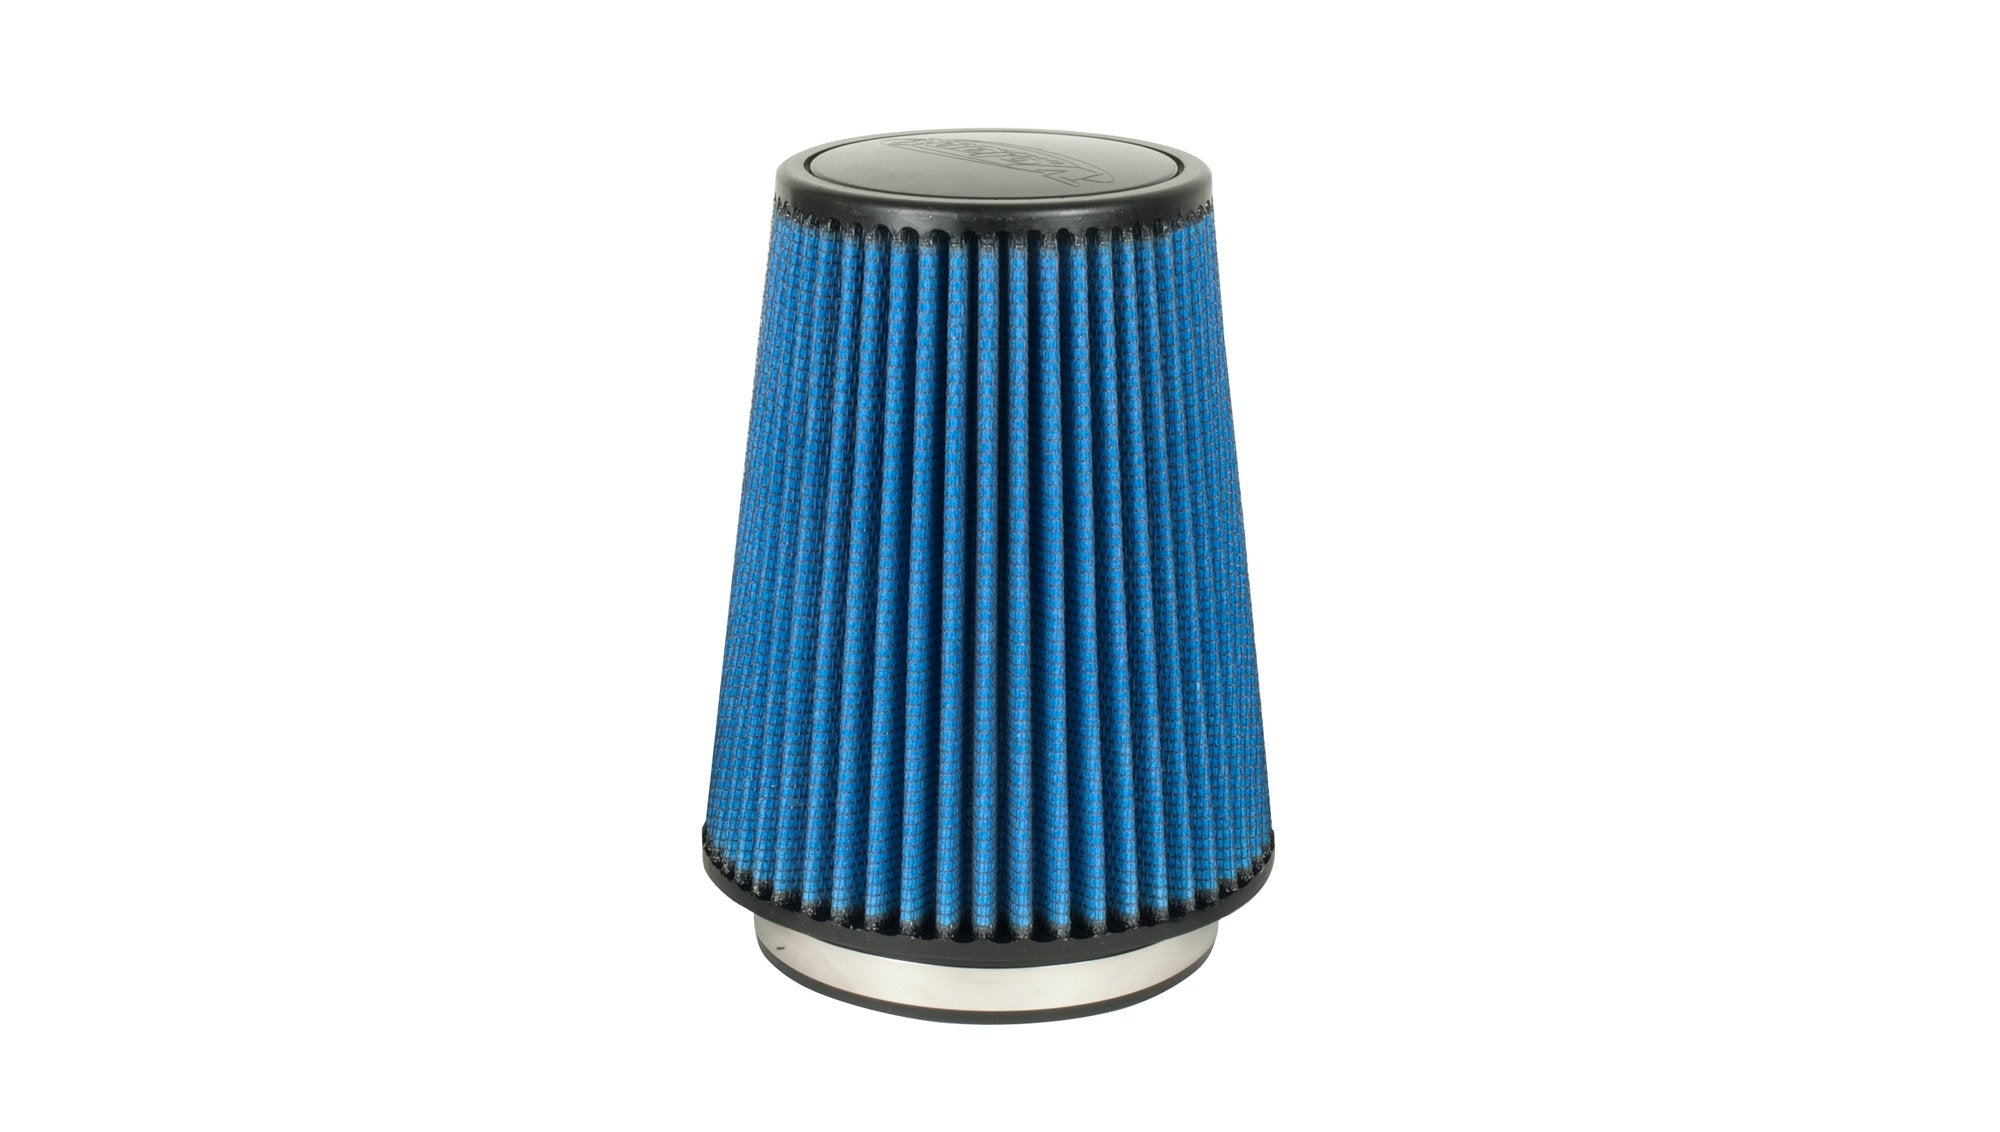 MaxFlow Oiled Air Filter (5117) Replacement Air Filter